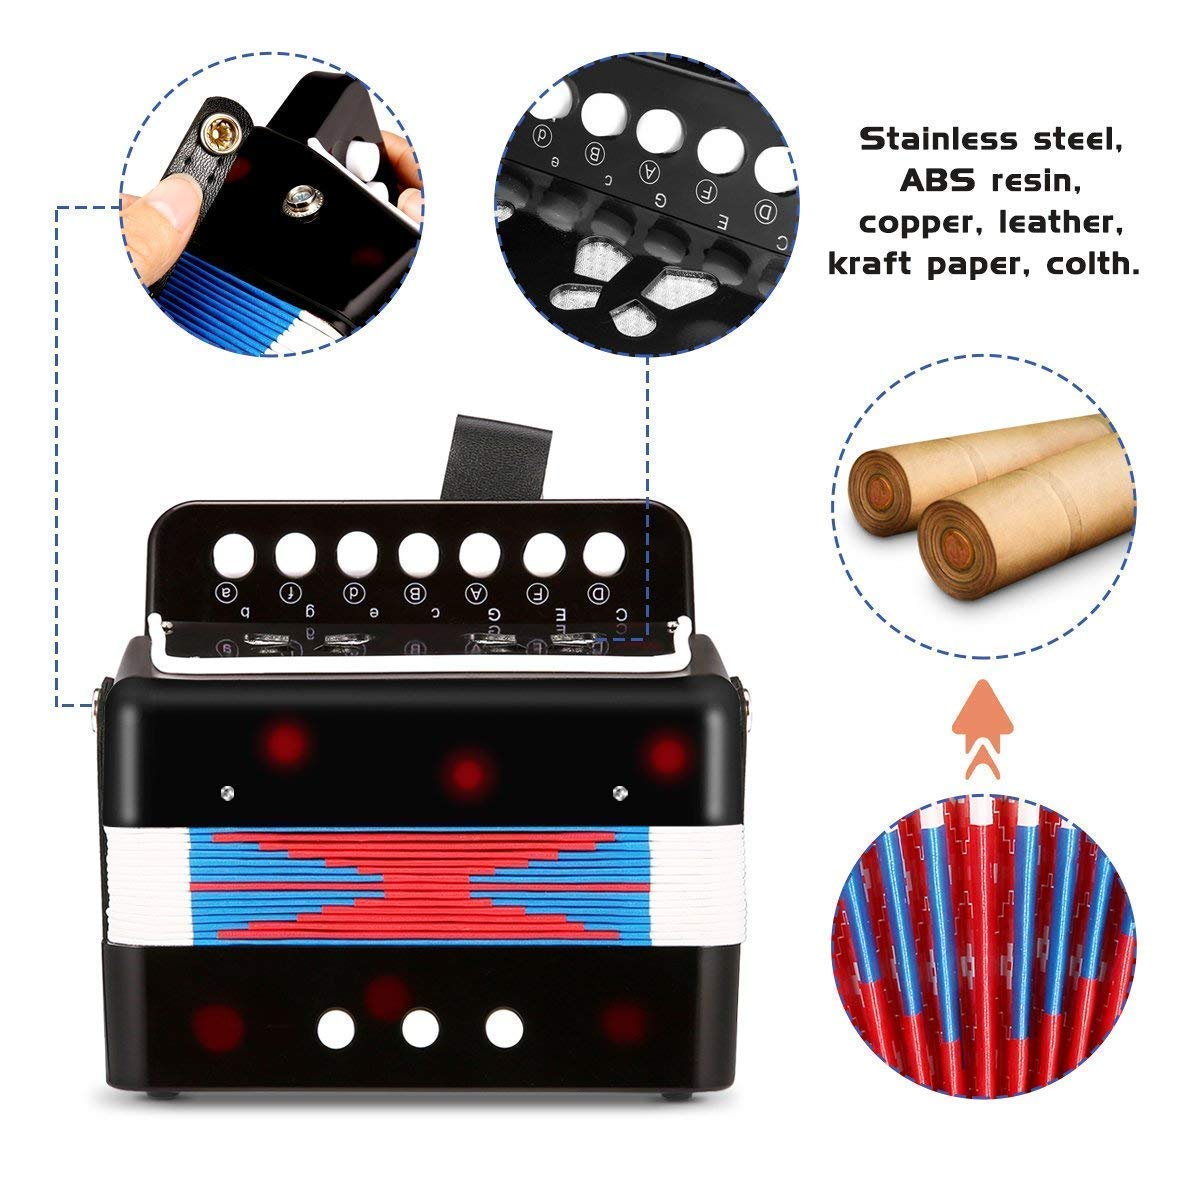 Children Musical Toy Instrument - 7 Keys 2 Bass Kid's Toy Accordion Rhythm Band Toy for Beginner Children Birthday's Gift by DigitalLife (Image #5)